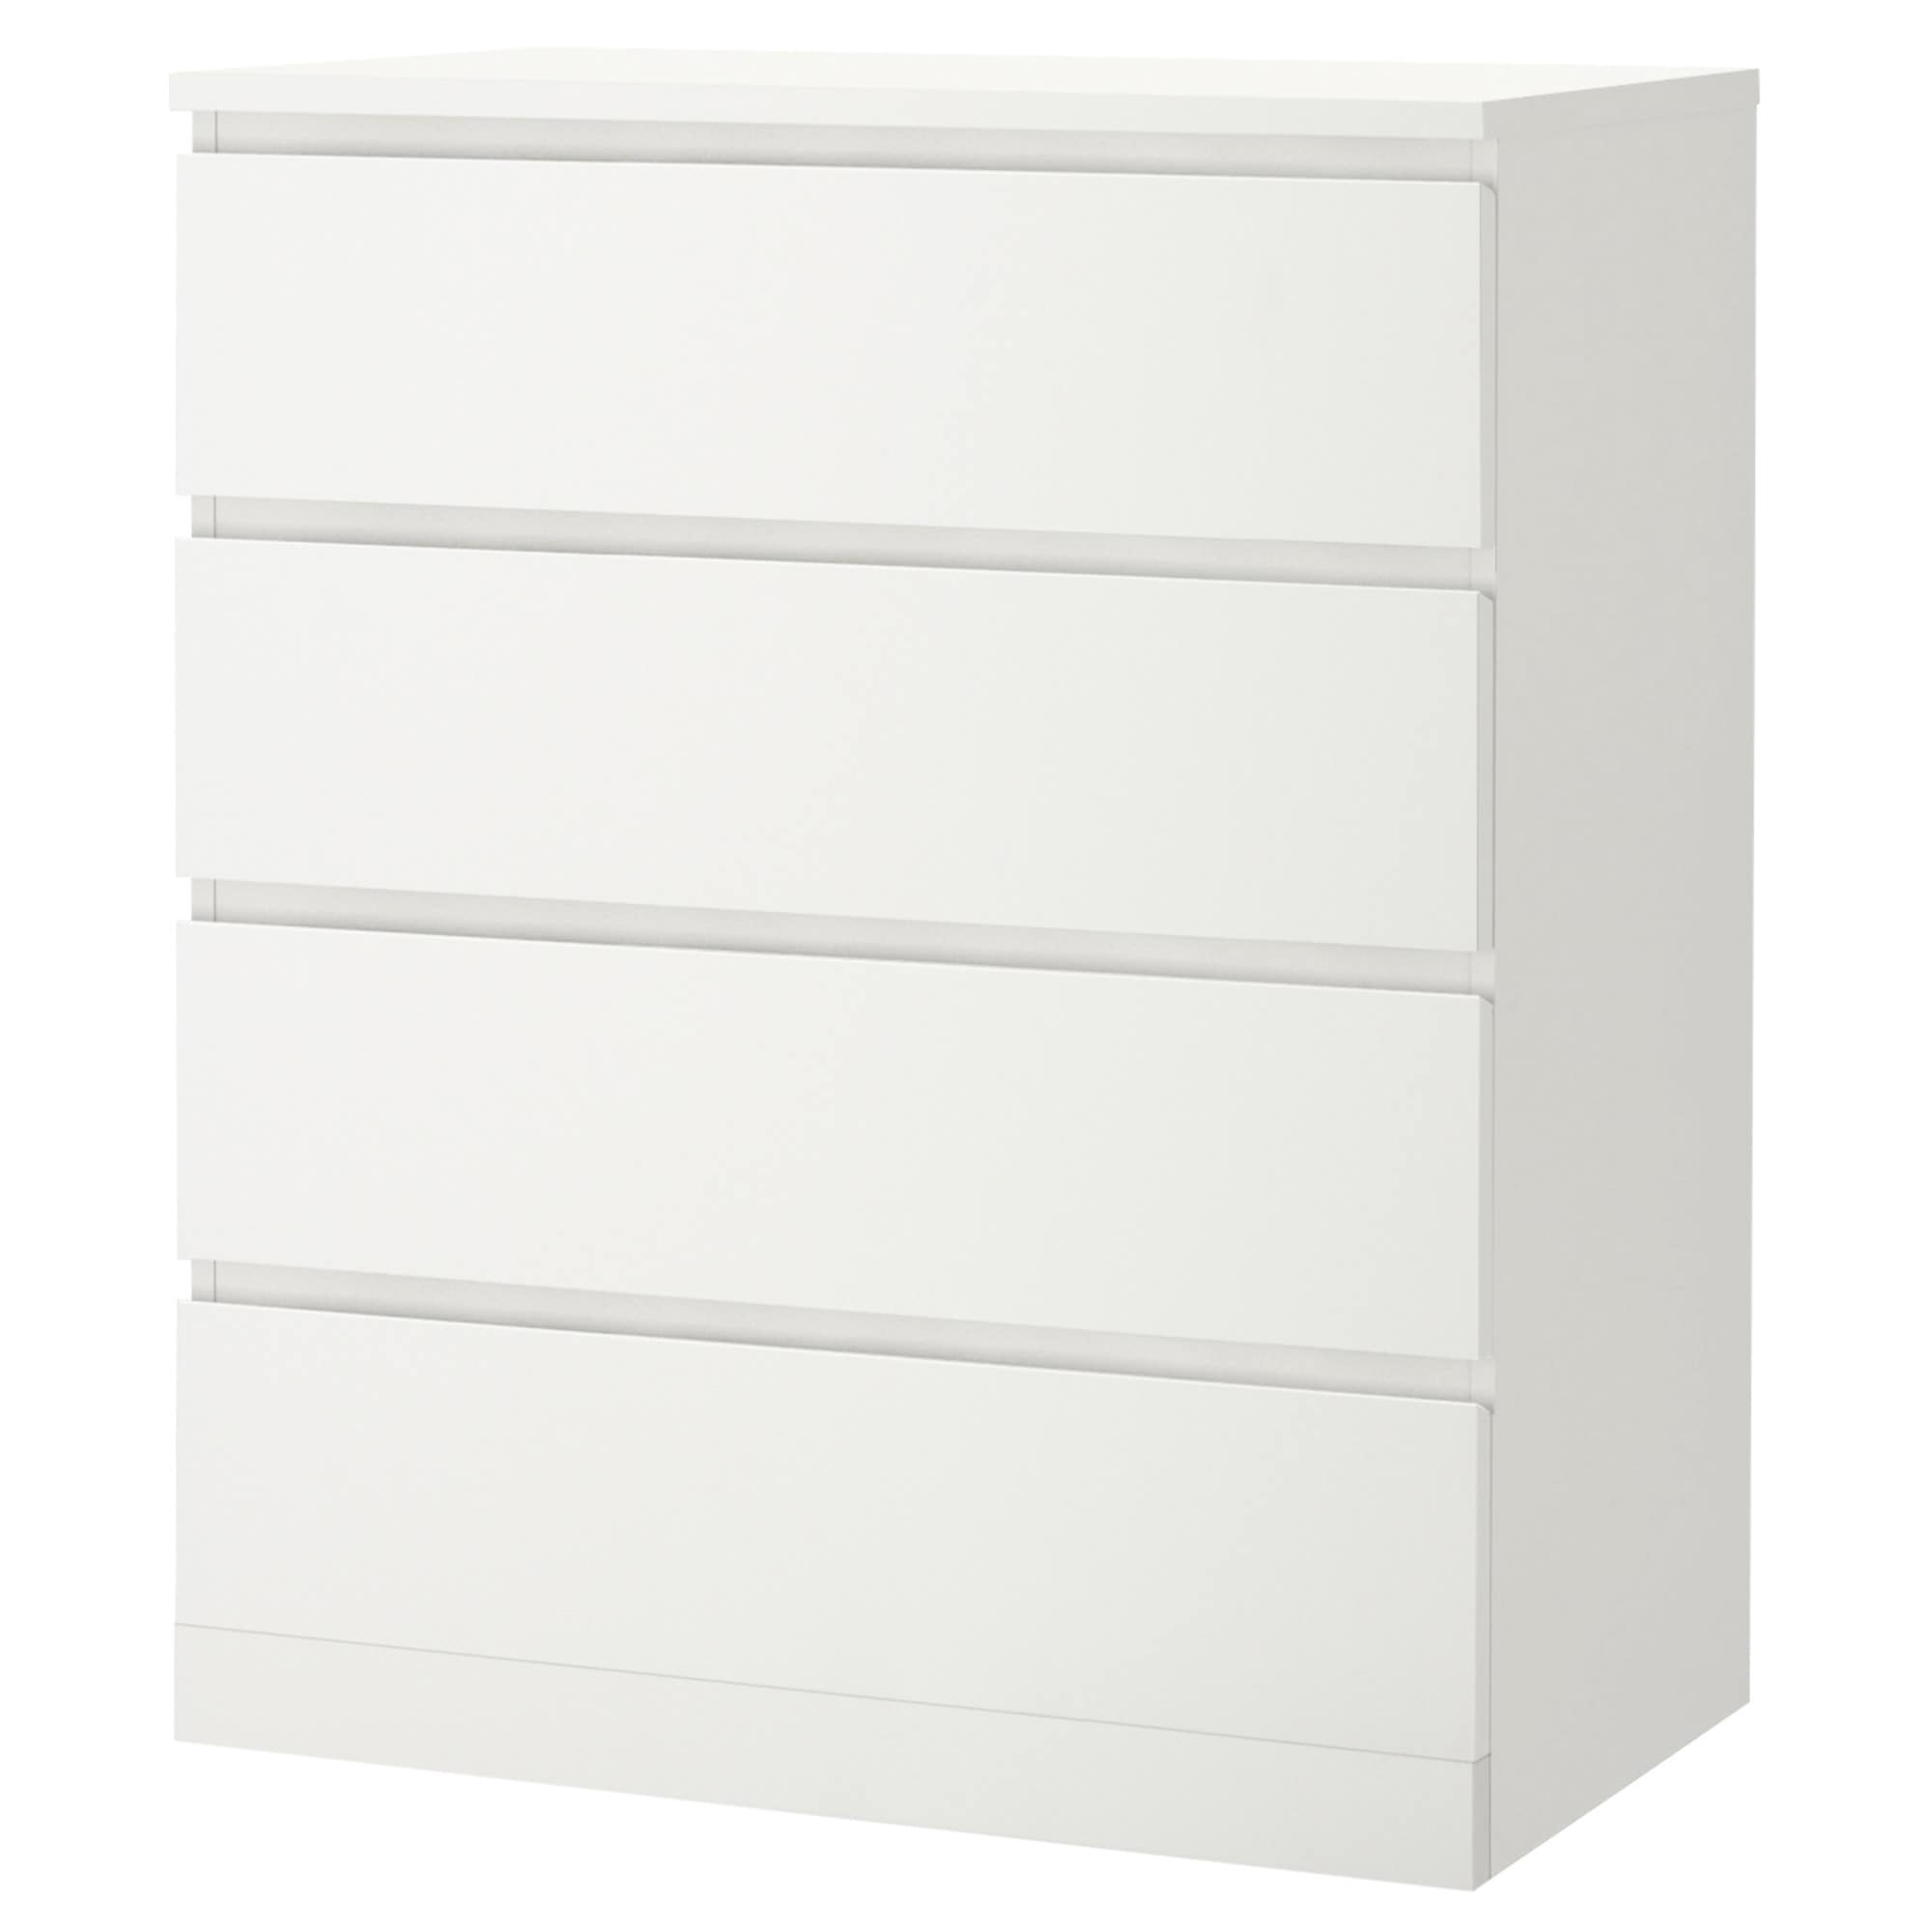 Ikea bedroom furniture chest of drawers - Malm 4 Drawer Chest White Width 31 1 2 Depth